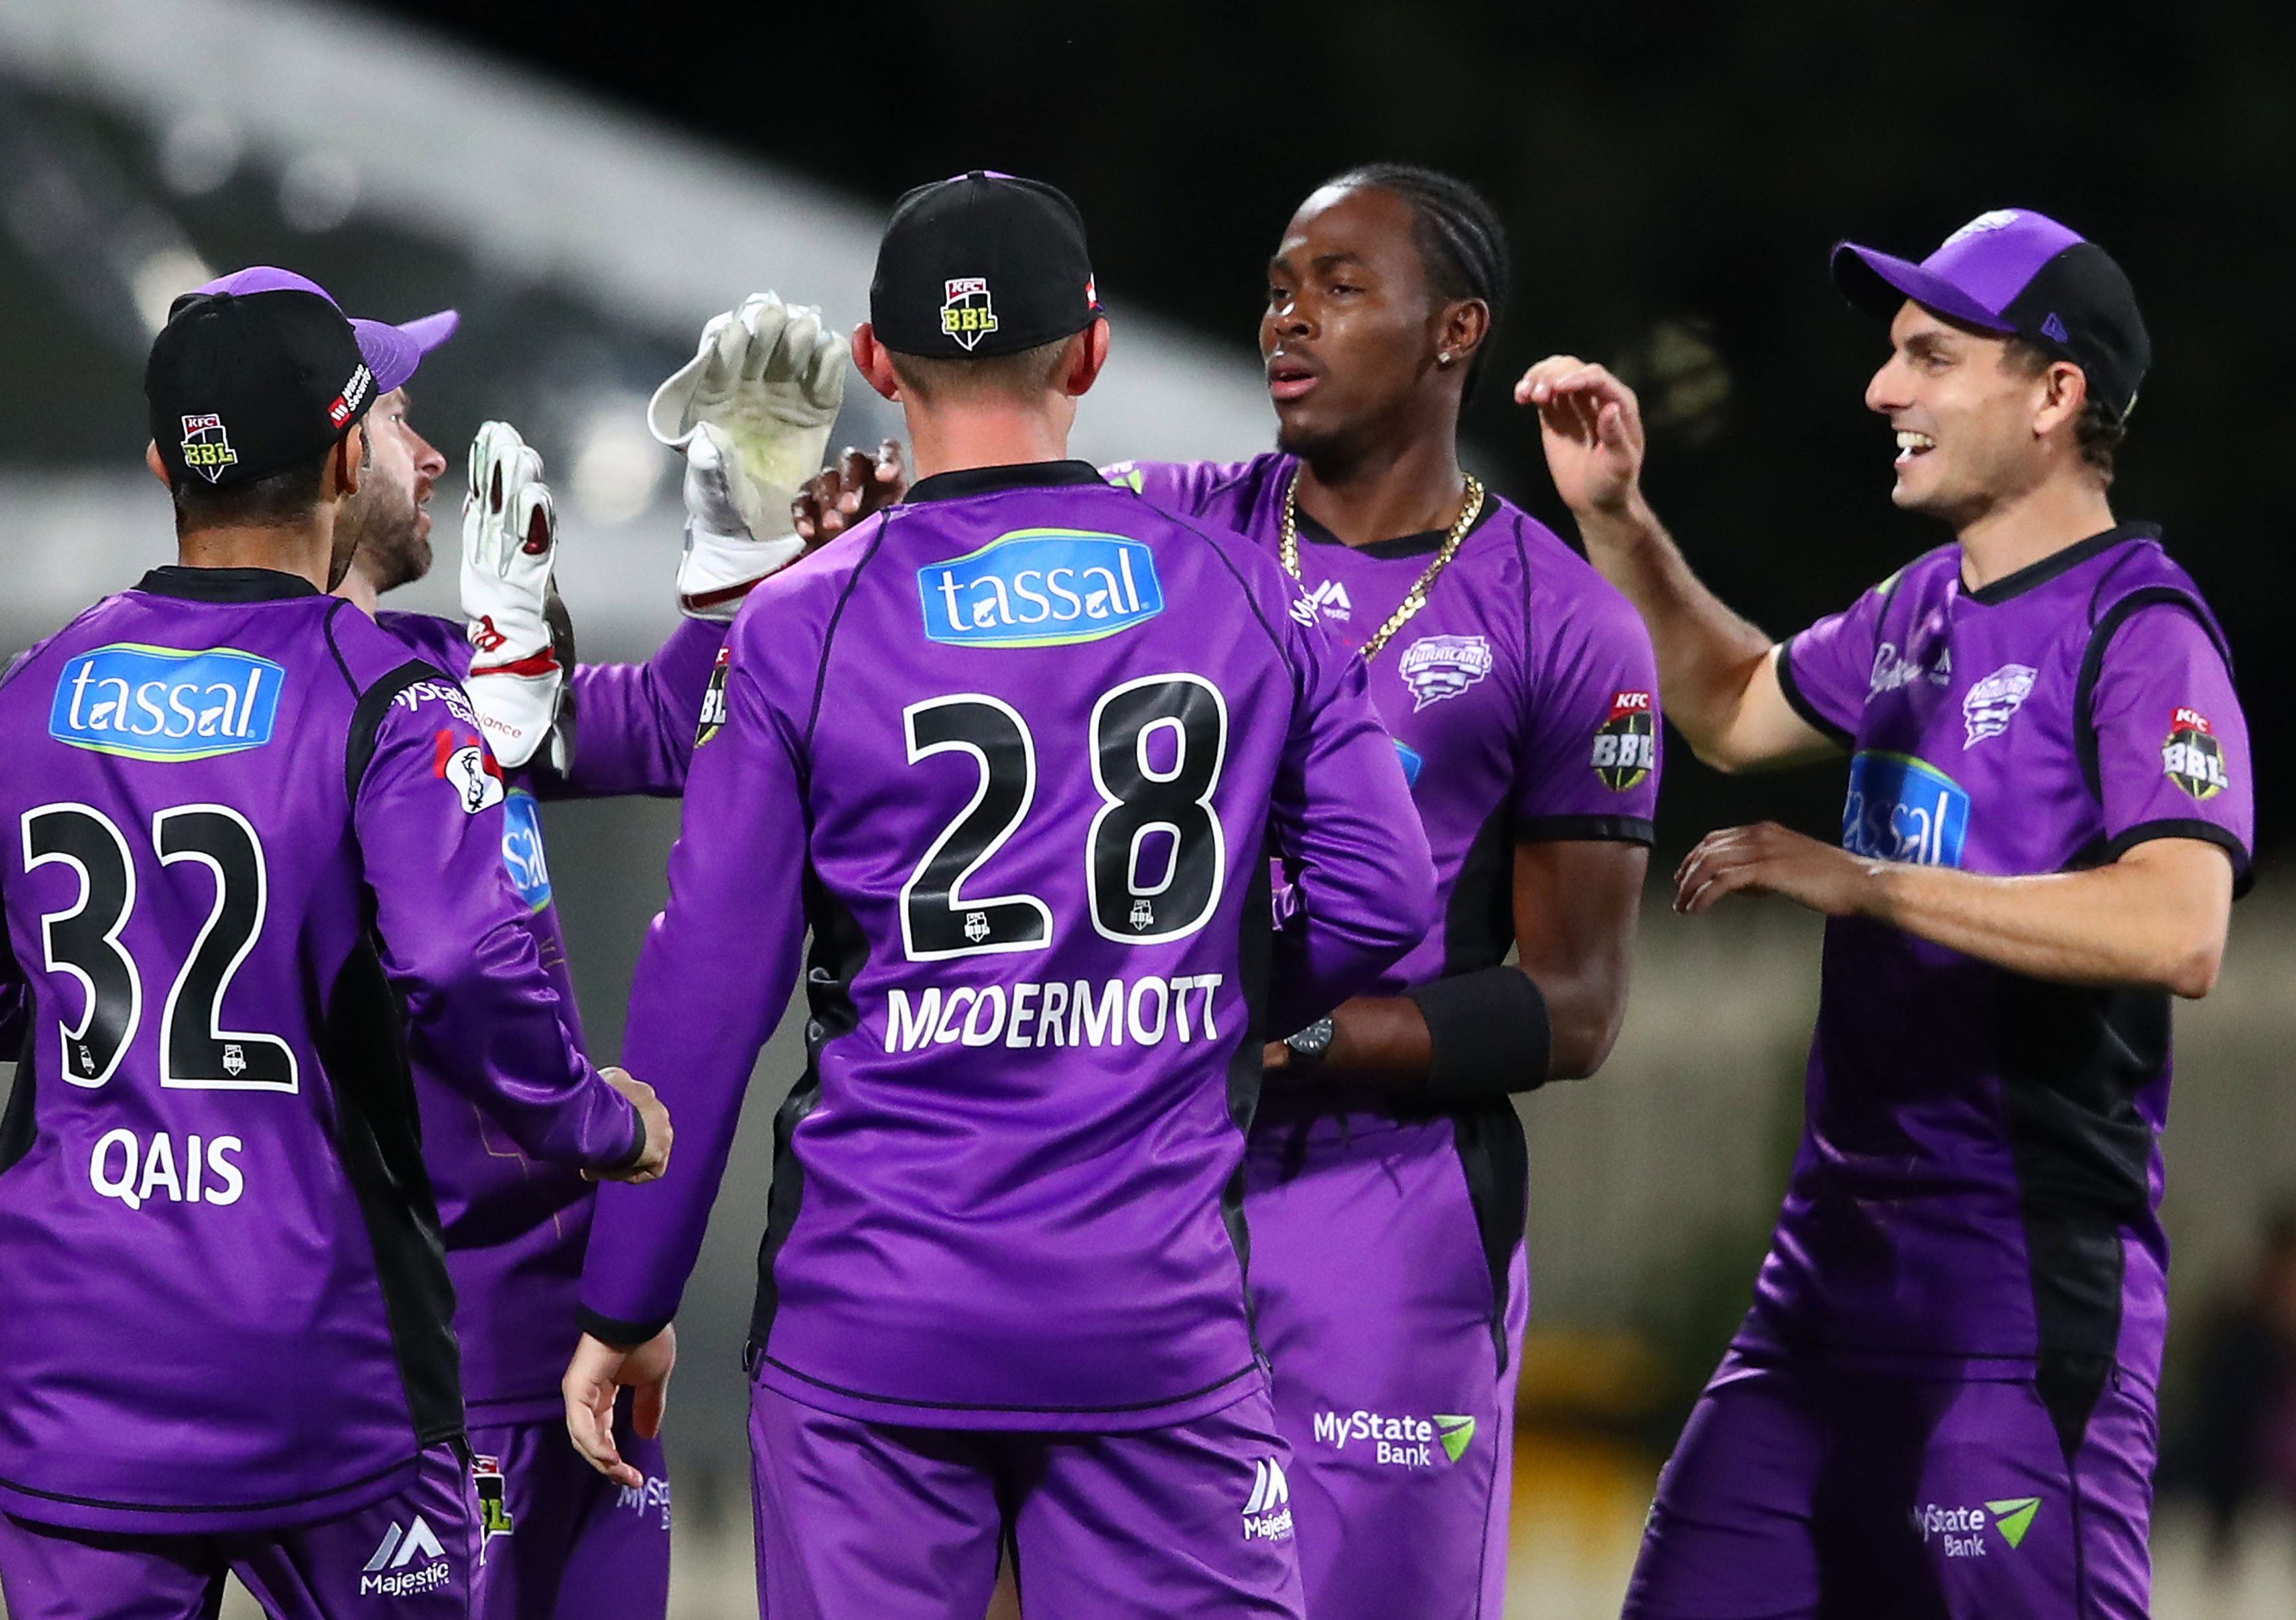 Jofra Archer has thrived in the shorter formats across the globe